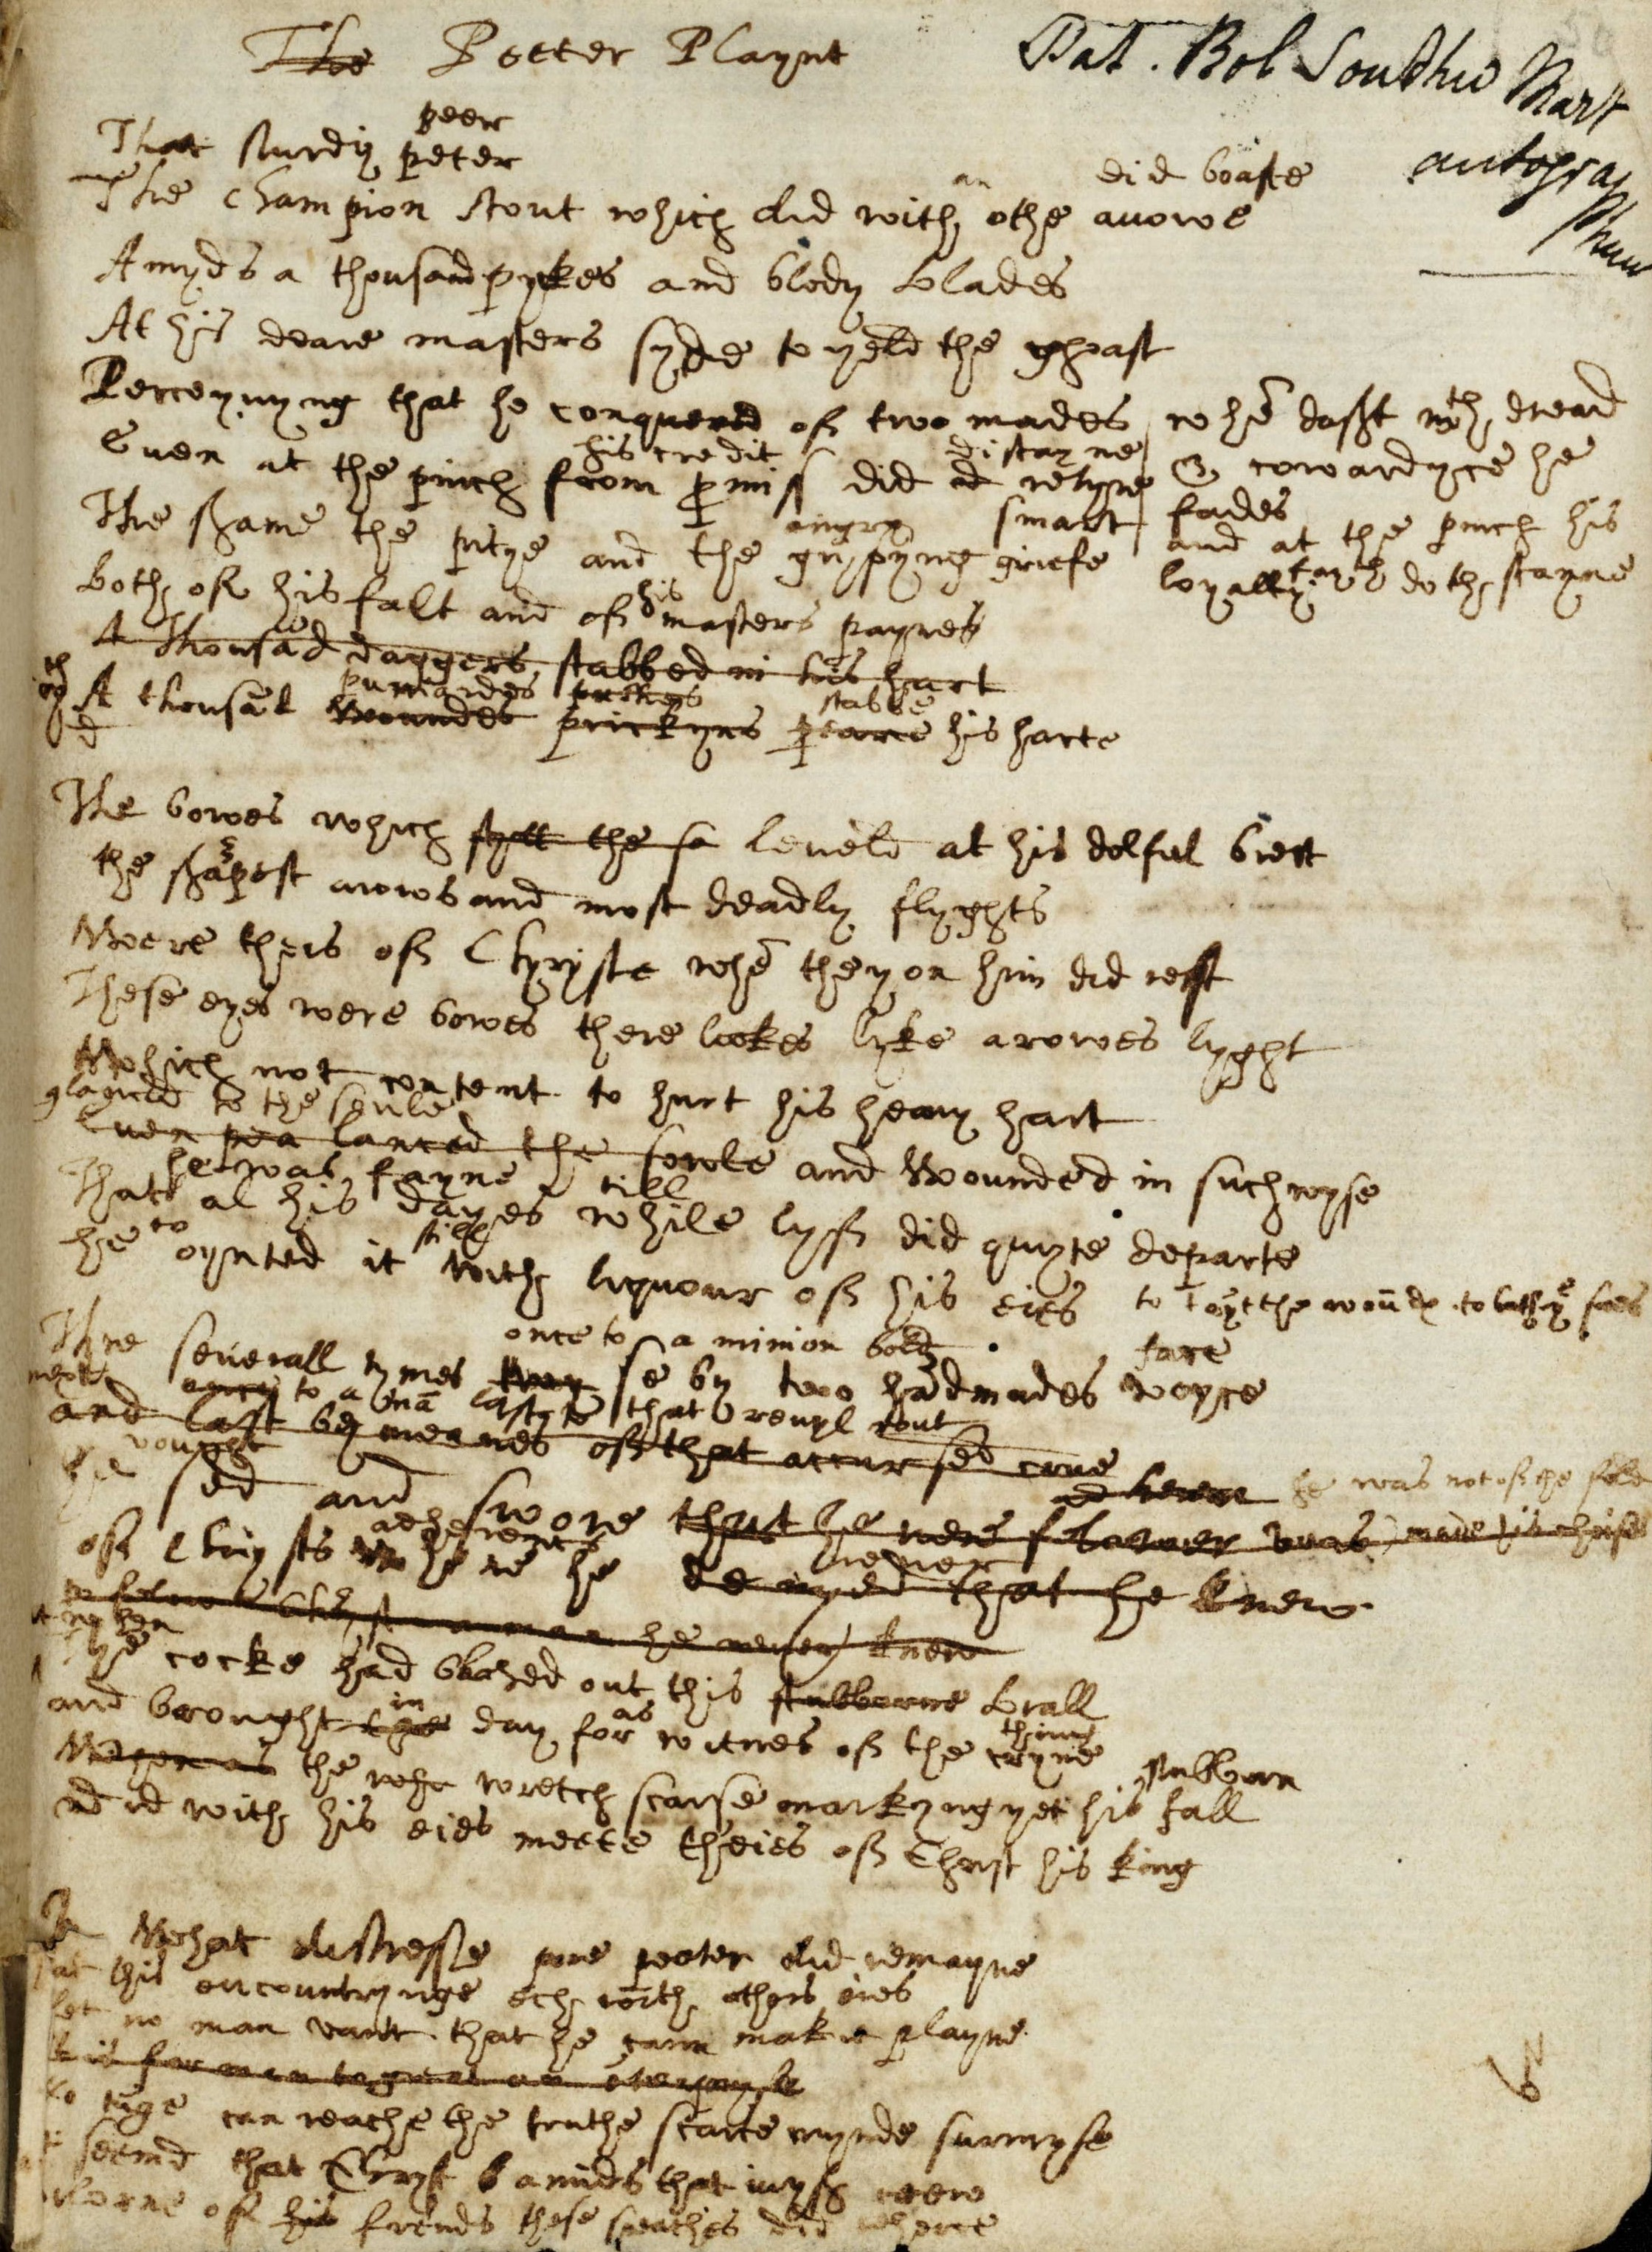 A poem written on paper in ink in Elizabethan Secretary style handwriting. Some words and lines have been crossed out and corrected